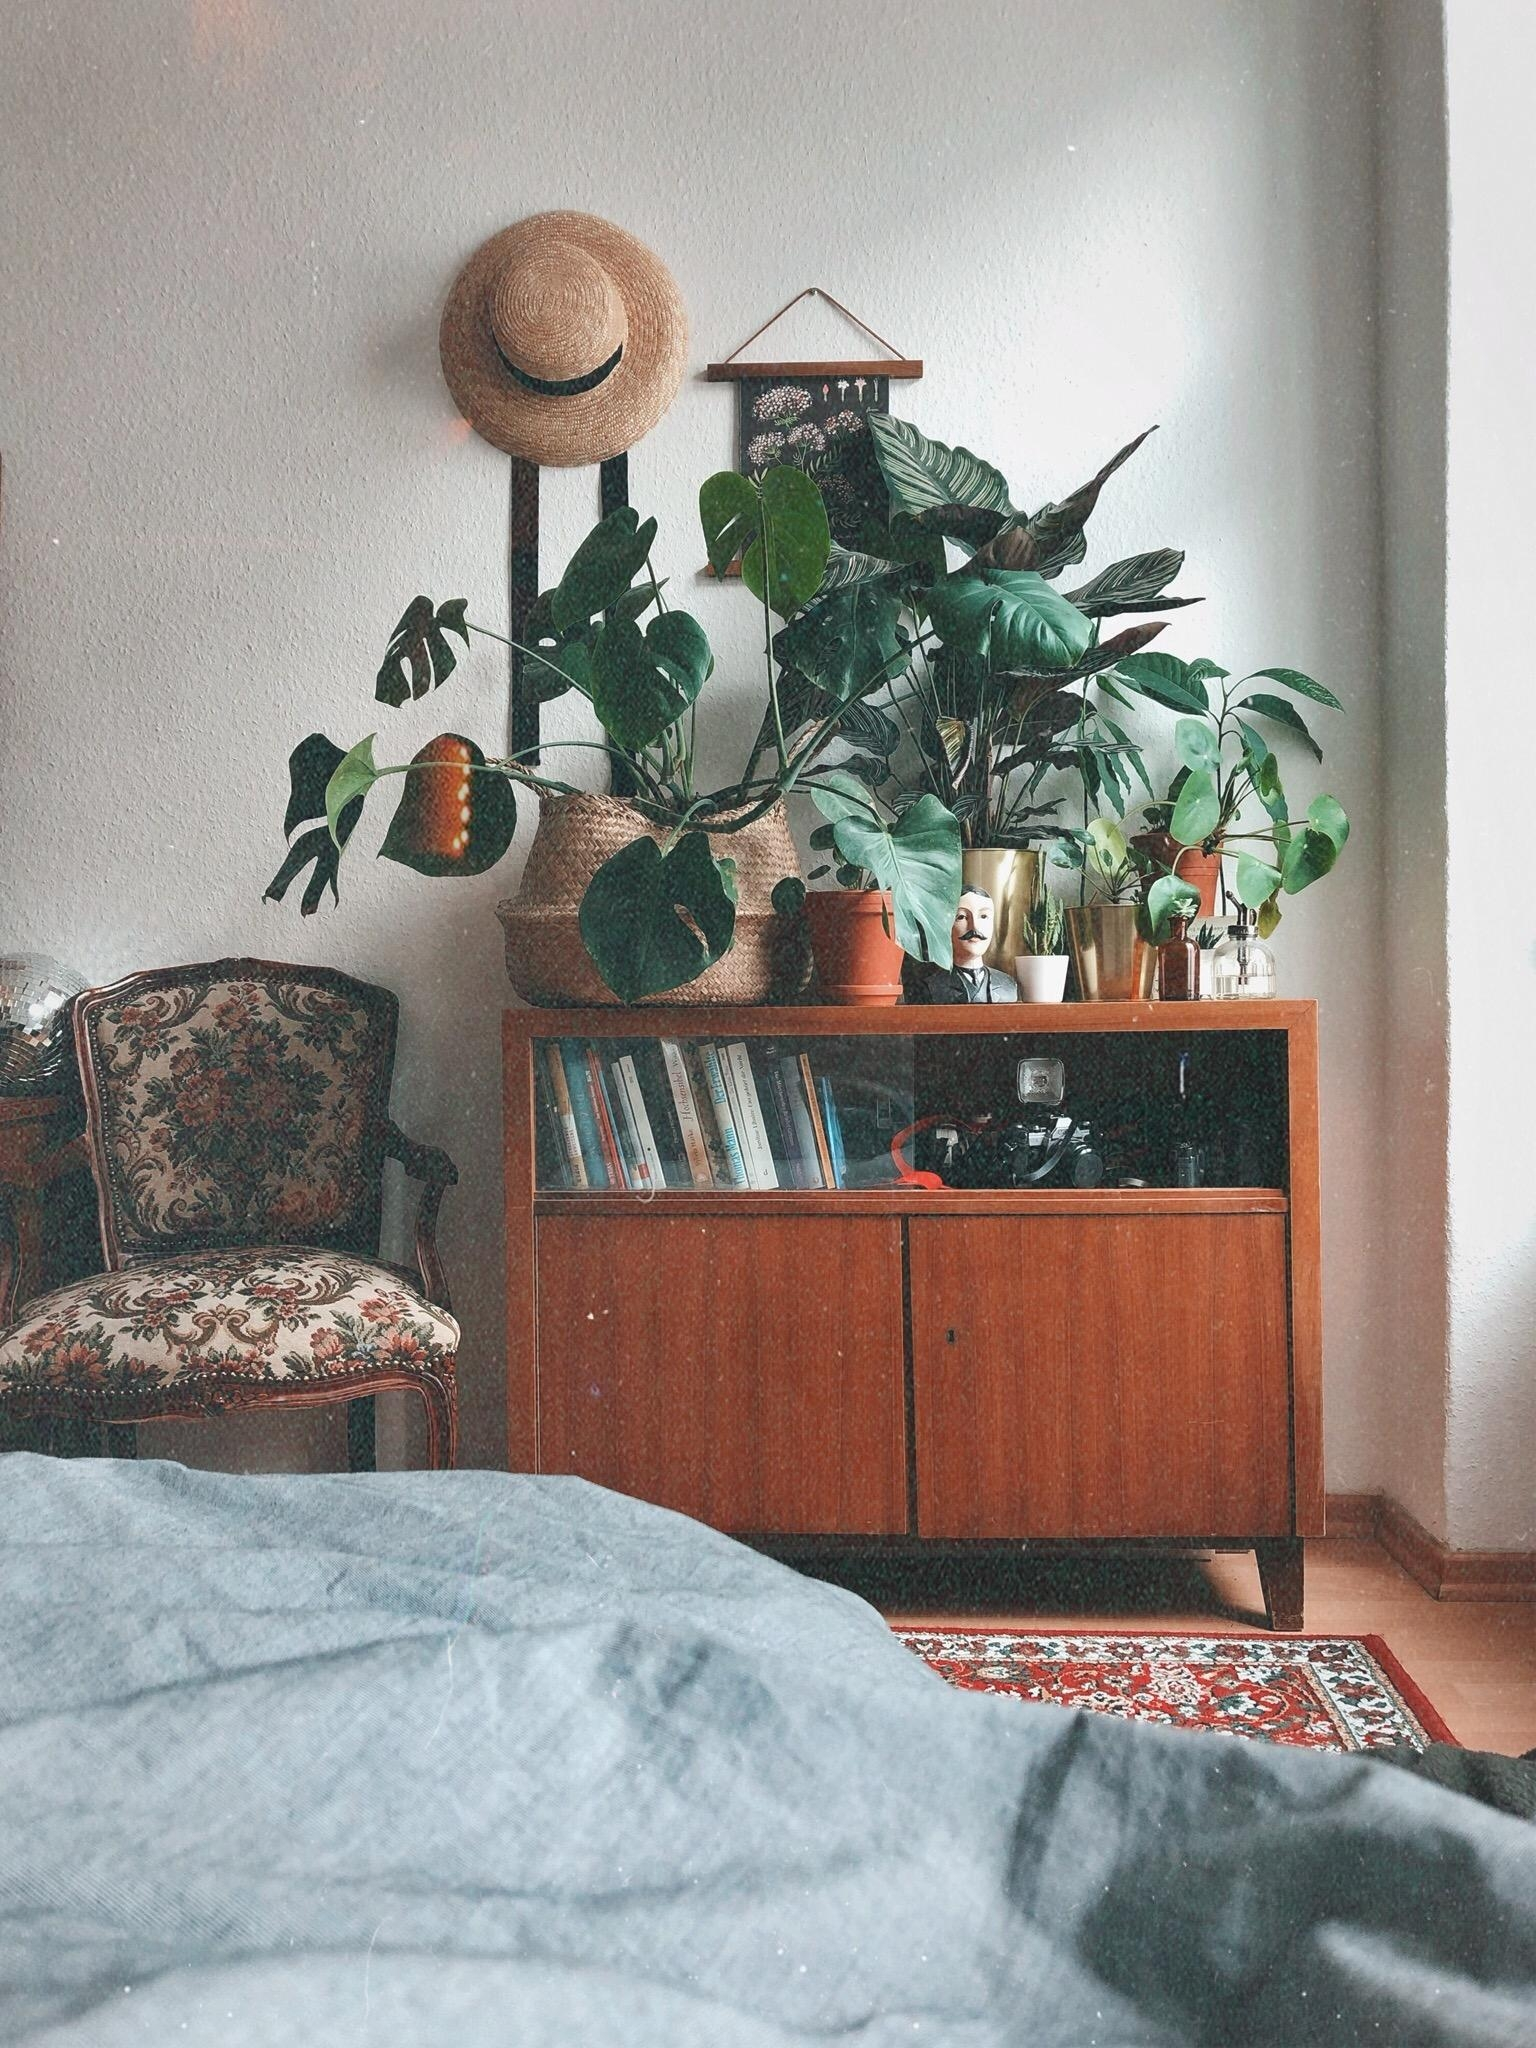 #homesweethome with my little plant Family in #berlin